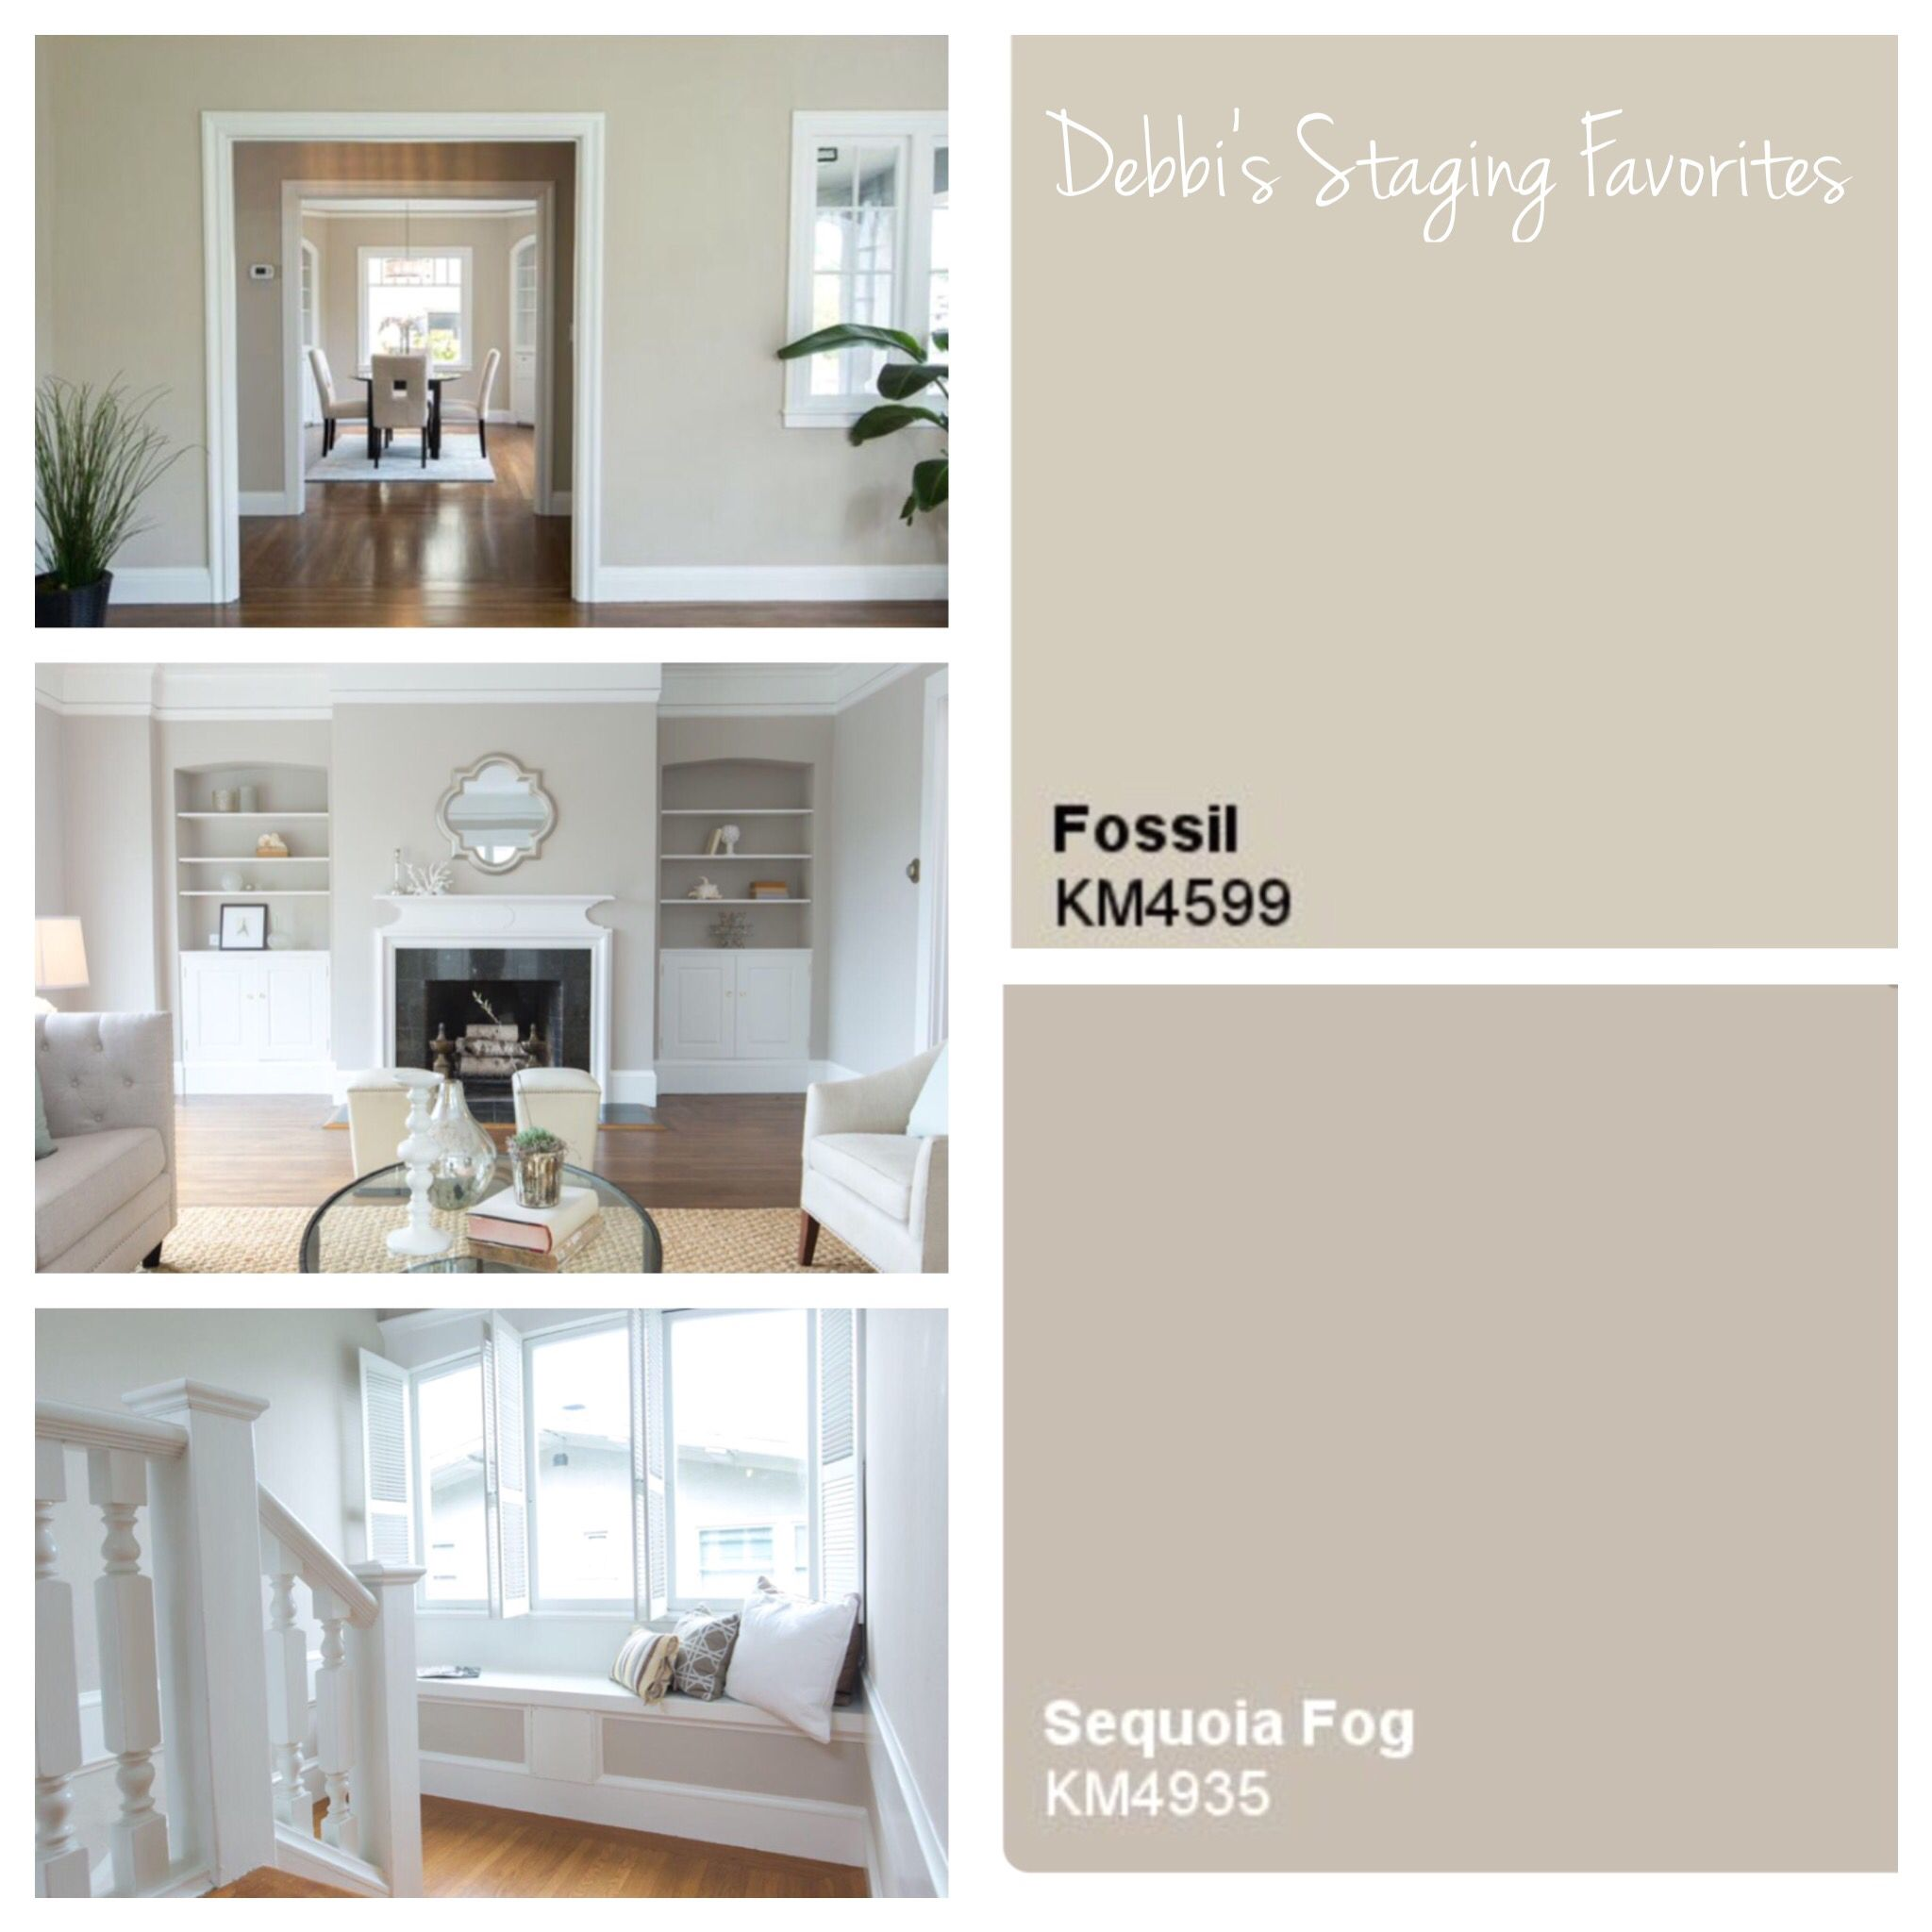 Interior paint colors frequently used in the homes we sell: Kelly ...